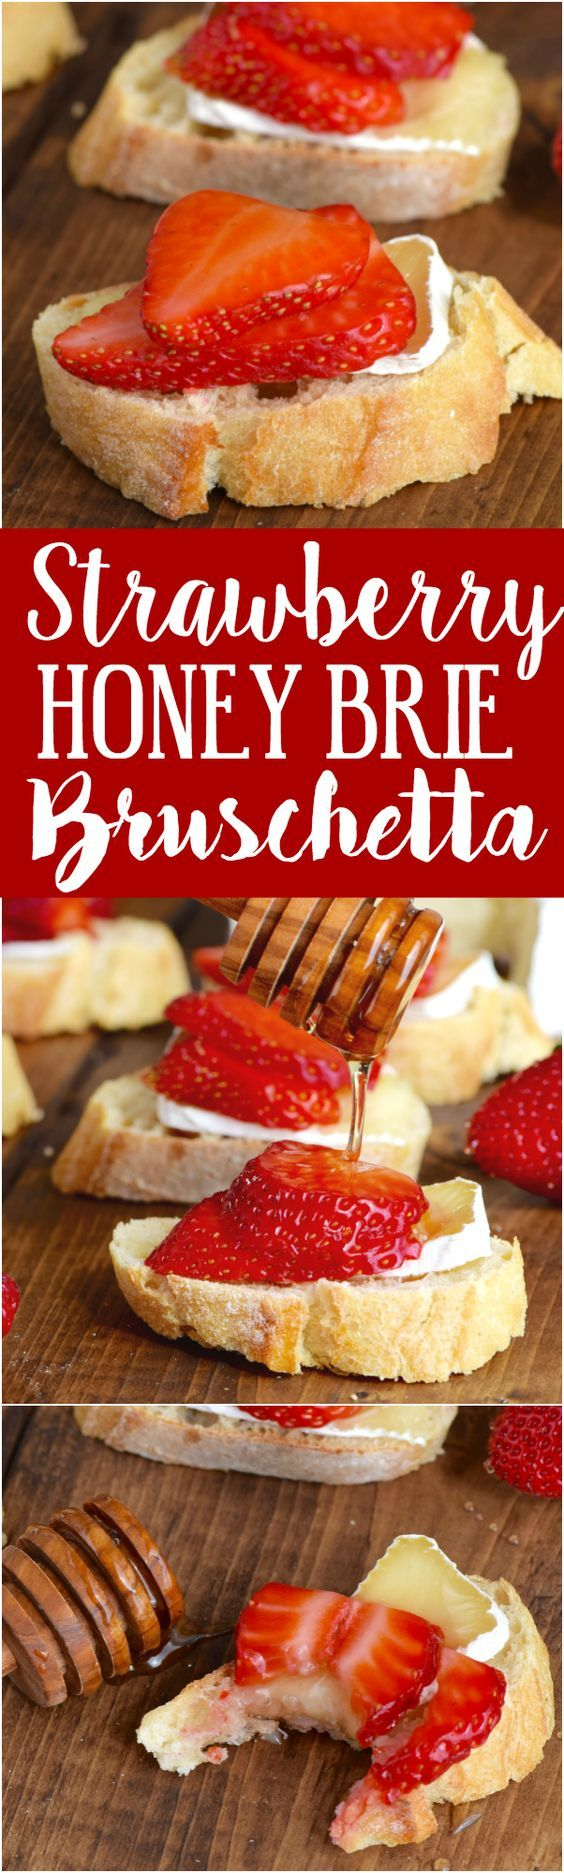 These Honey, Strawberry & Brie Bruschetta are made with just four ingredients in about 10 minutes! So easy and perfect for parties!